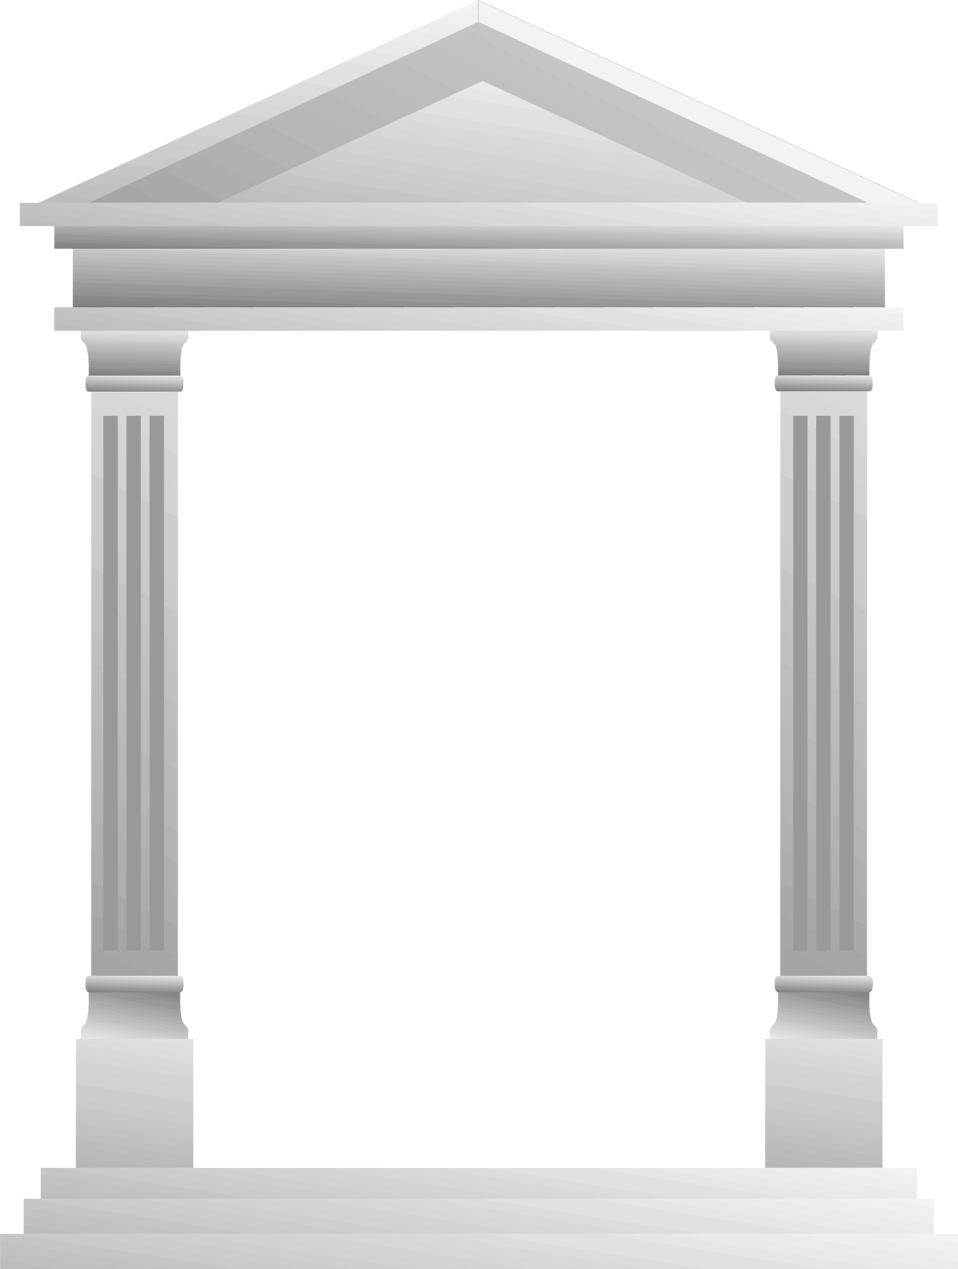 Illustration of a blank Roman pavillion frame : Free Stock Photo